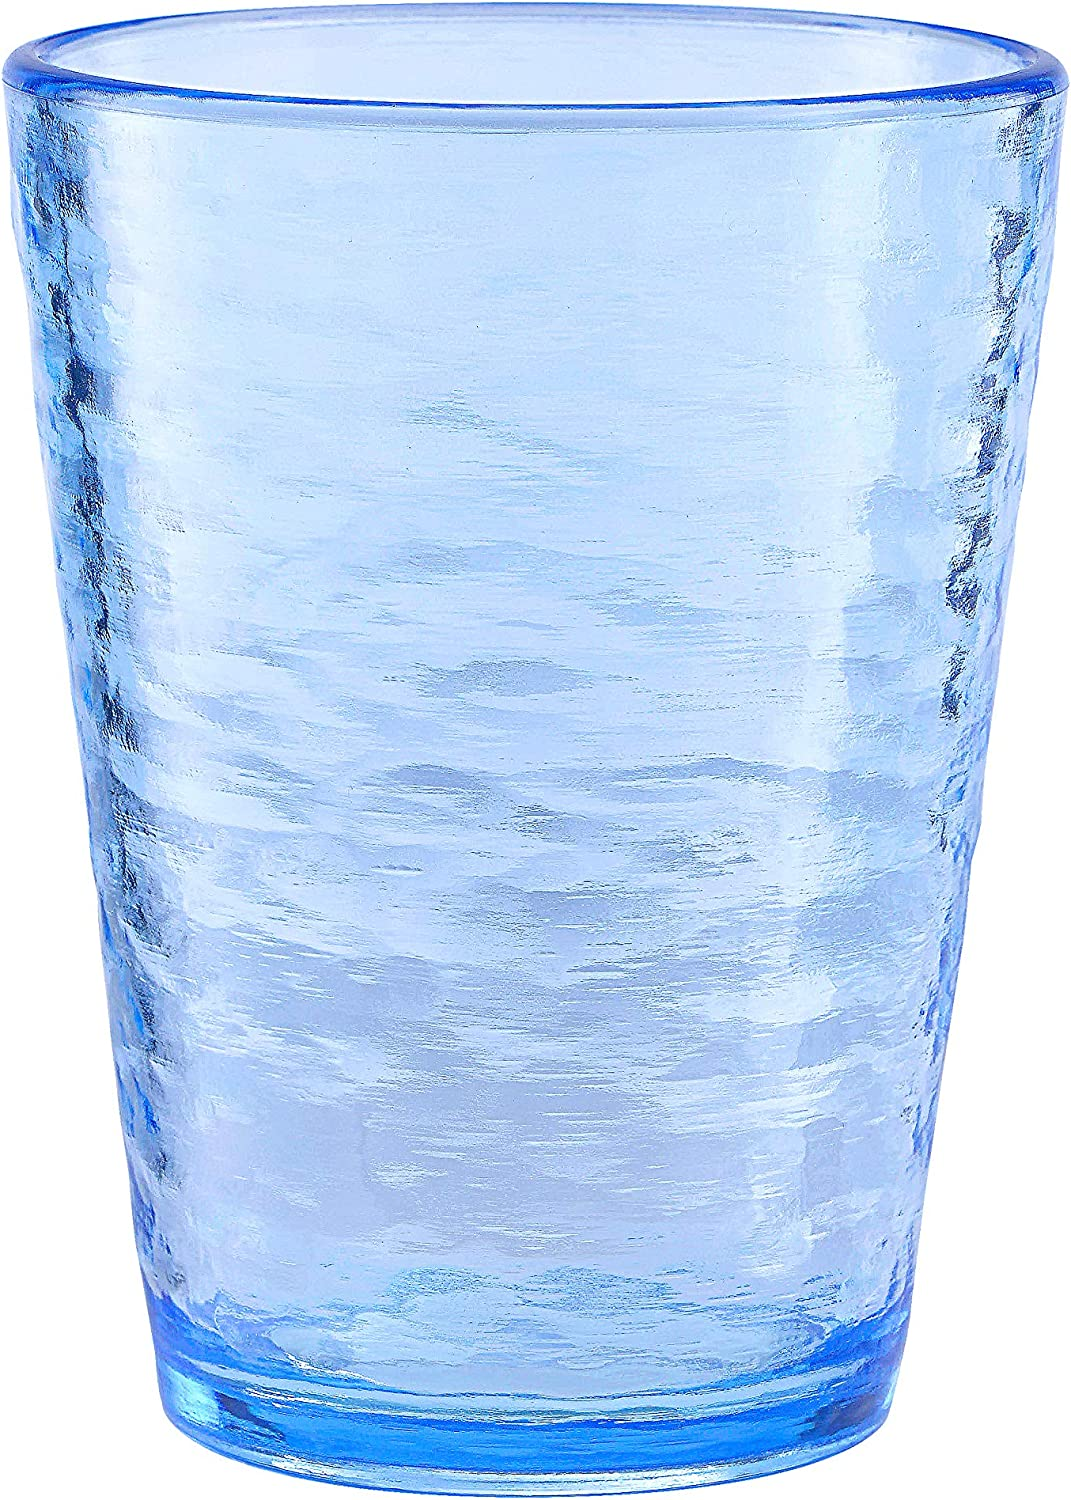 KLIFA- RIPPLE- 16 ounce Set of Acrylic Challenge the Seattle Mall lowest price Japan ☆ Glas Tumbler Drinking 6